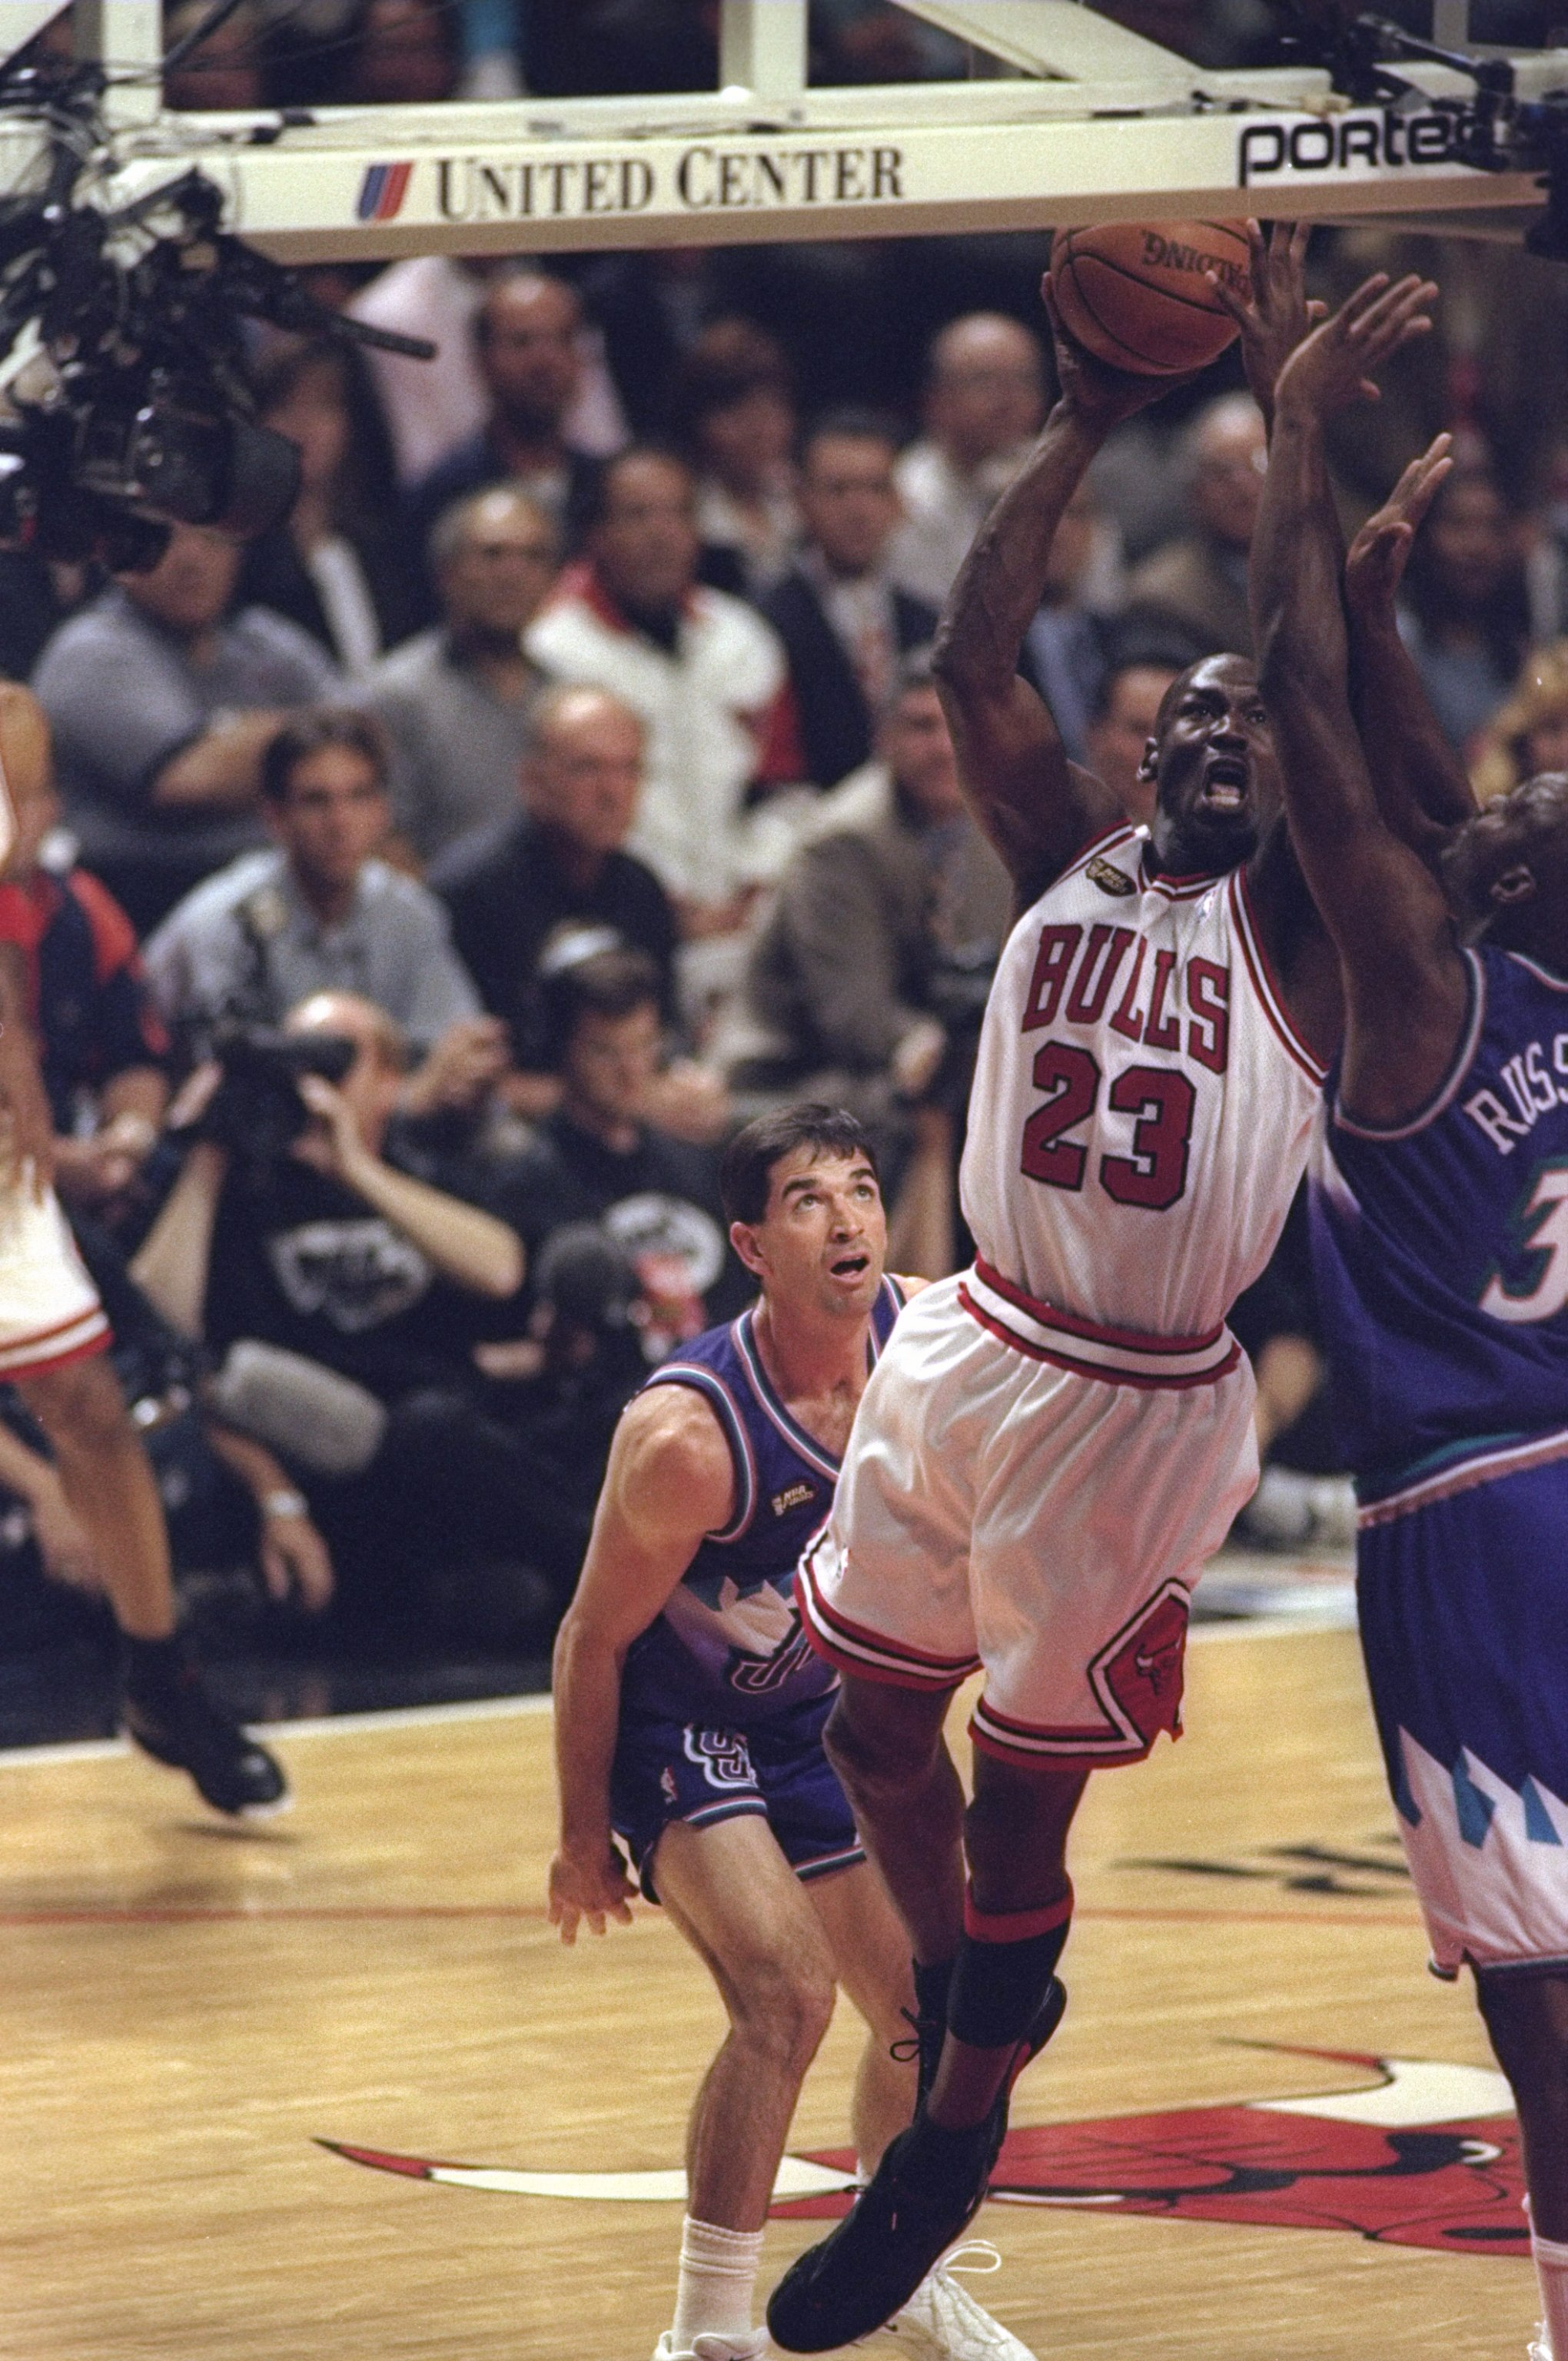 10 Jun 1998:  Michael Jordan #23 of the Chicago Bulls in action against John Stockton #12 and Bryon Russell #3 of the Utah Jazz during the NBA Finals Game 4 at the United Center in Chicago, Illinois.  The Bulls defeated the Jazz 86-82. Mandatory Credit: M